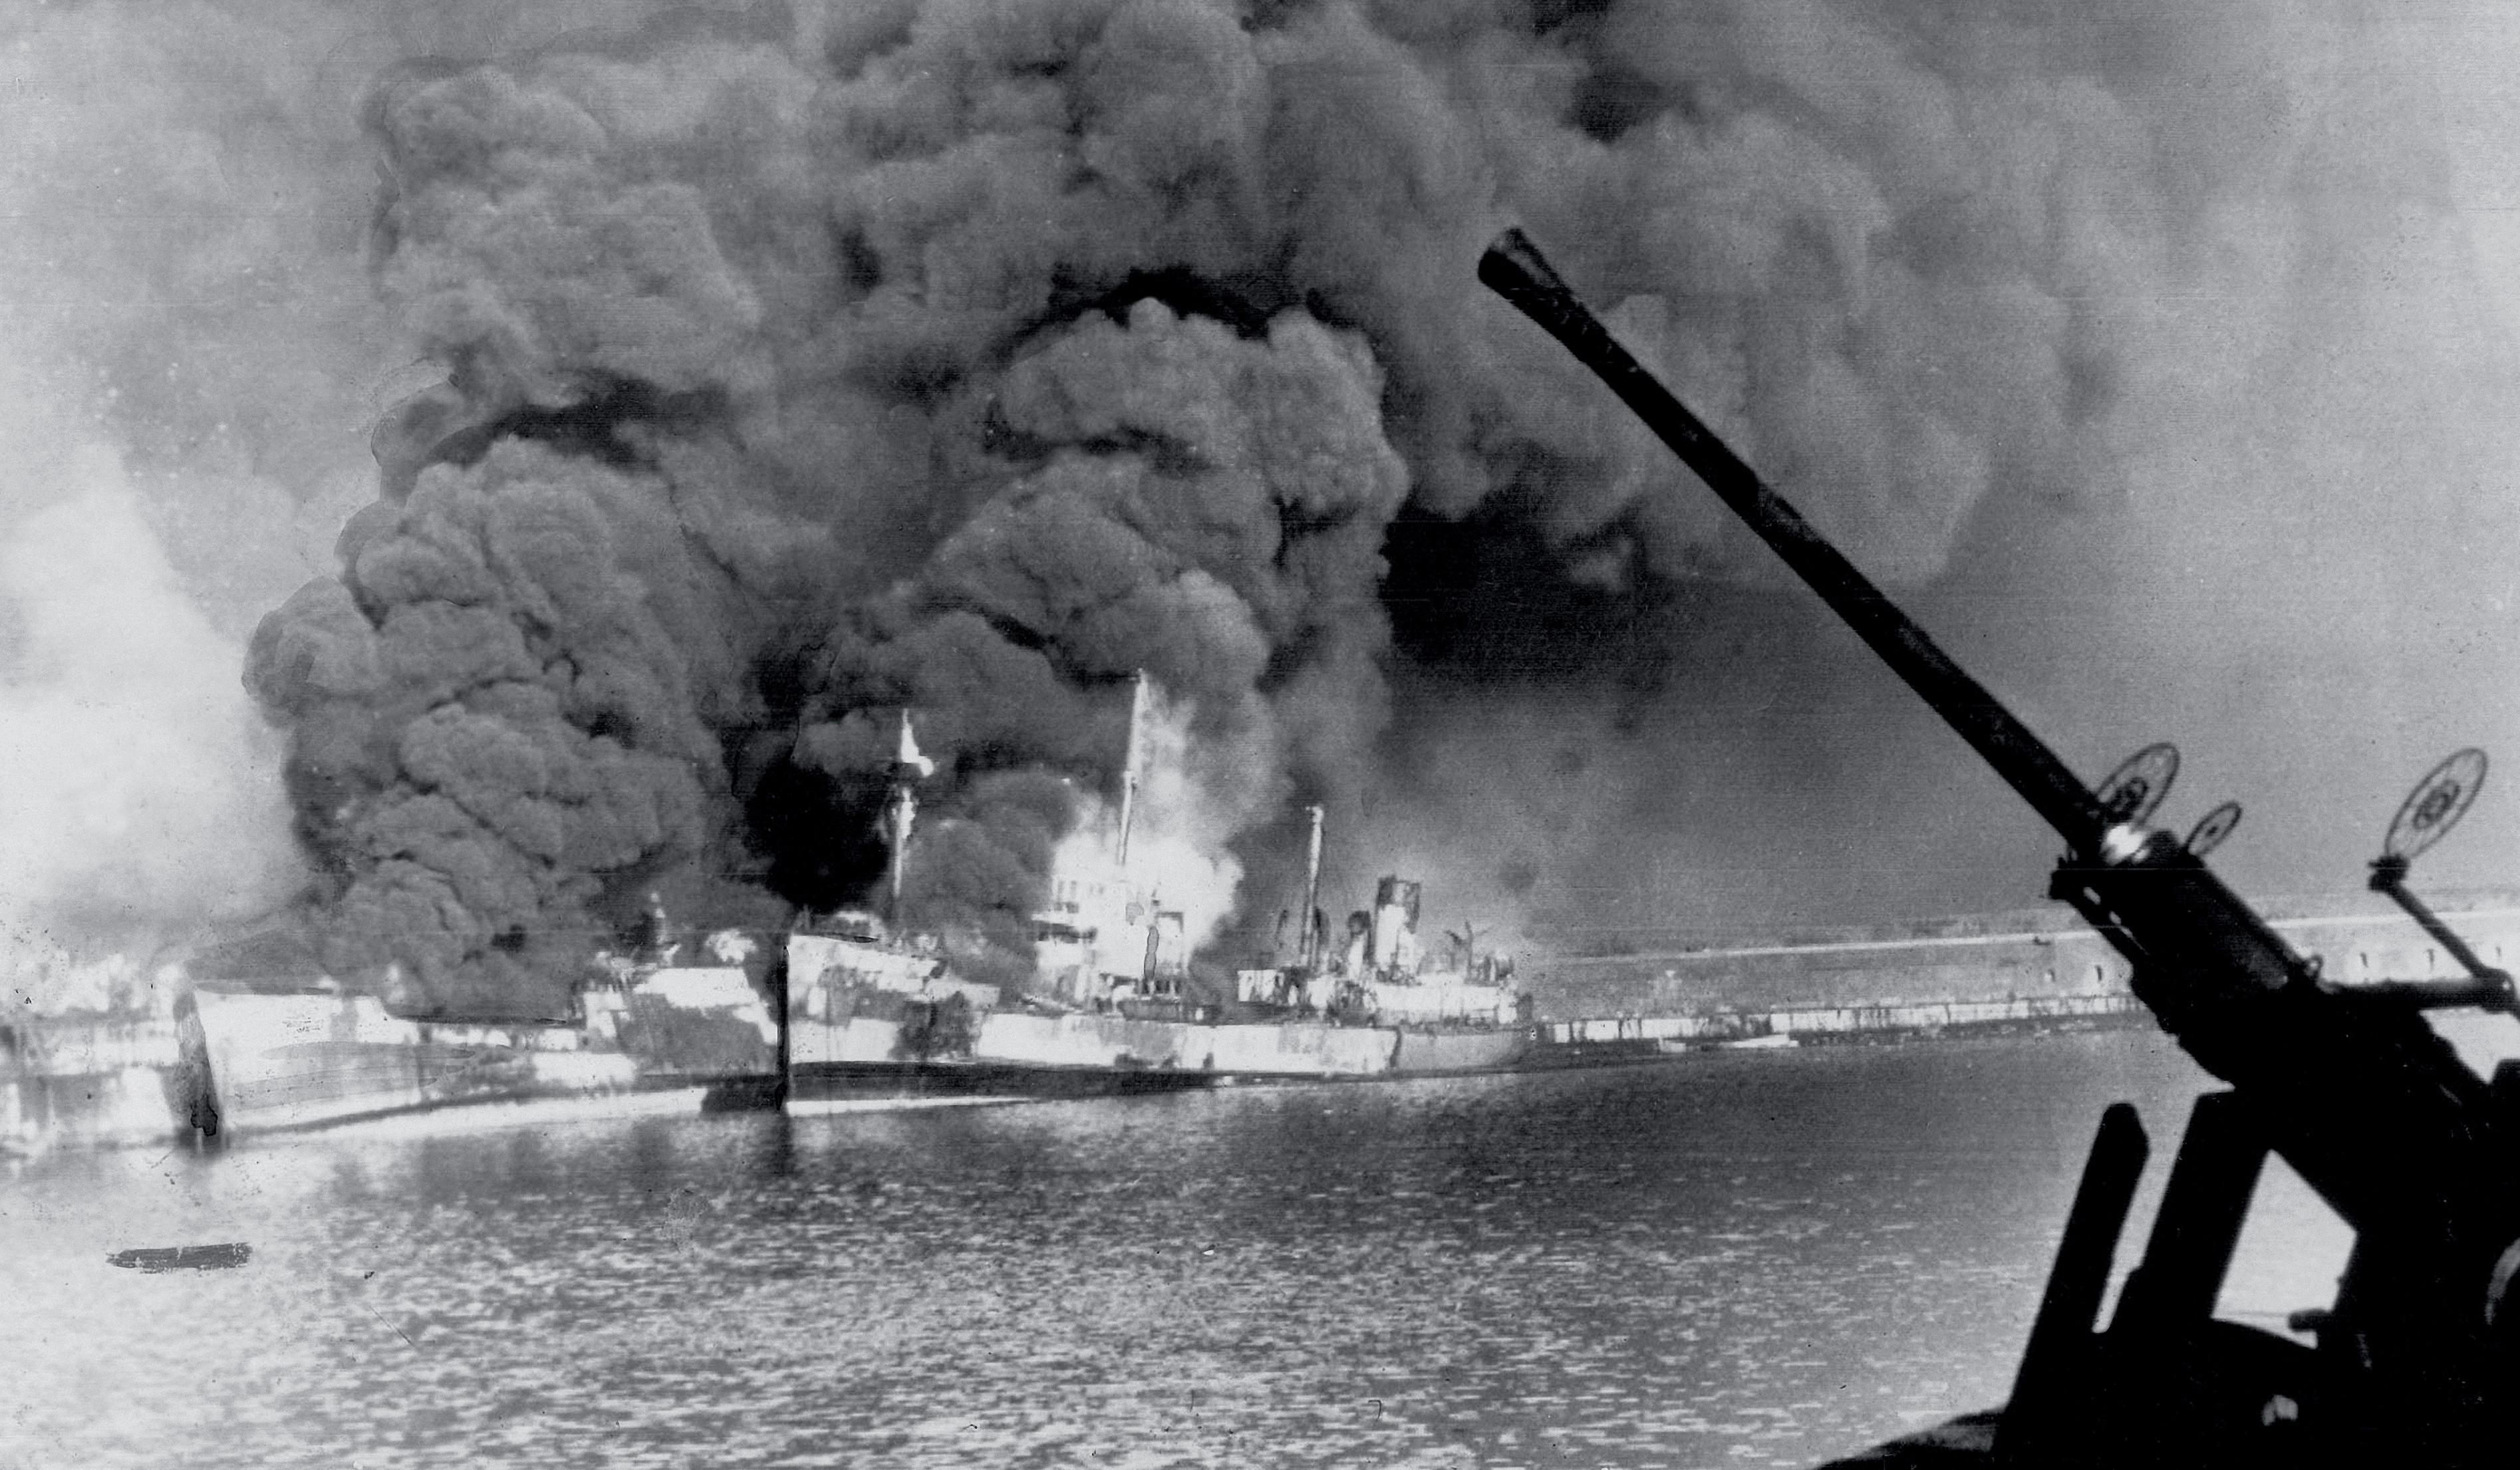 The December 1943 German military air raid on Bari destroyed 17 Allied ships, killed more than 1,000 servicemen and ignited a mysterious outbreak.